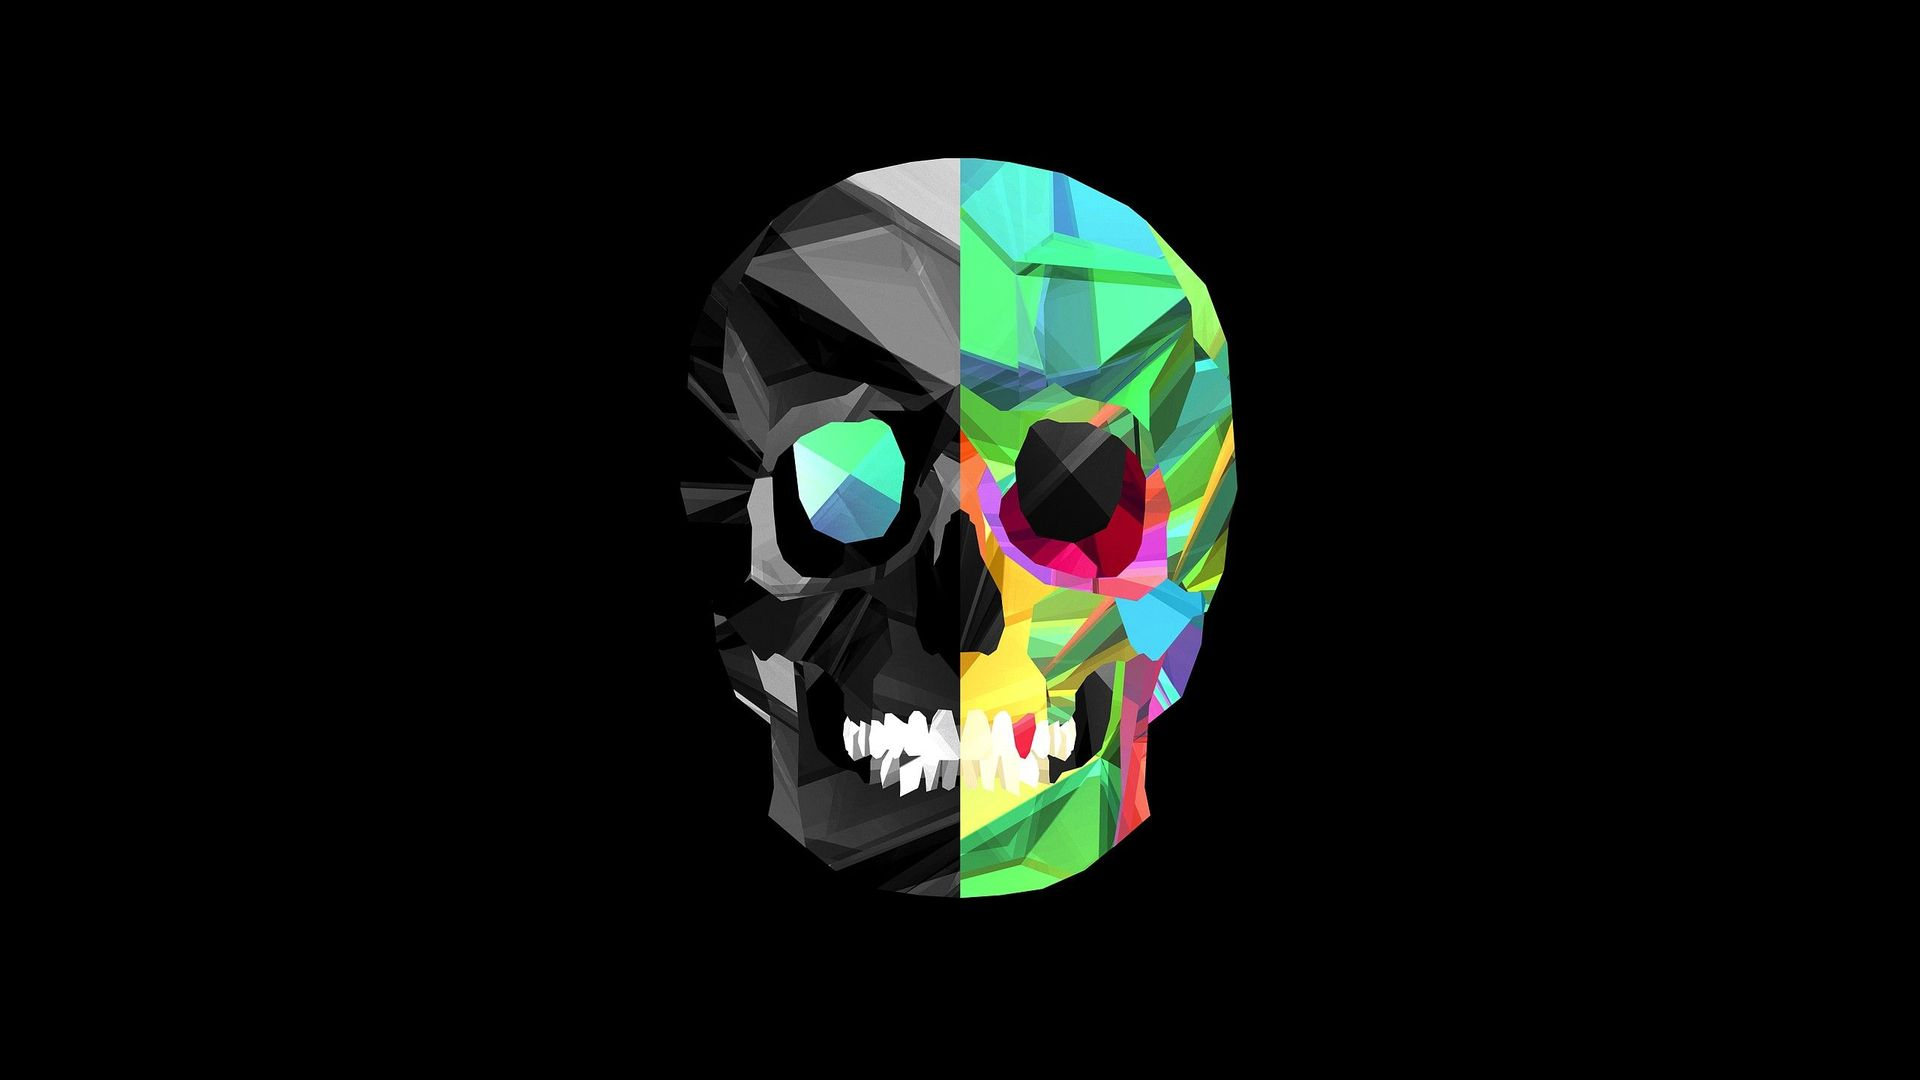 Skull Wallpapers High Quality Resolution Is Cool Wallpapers